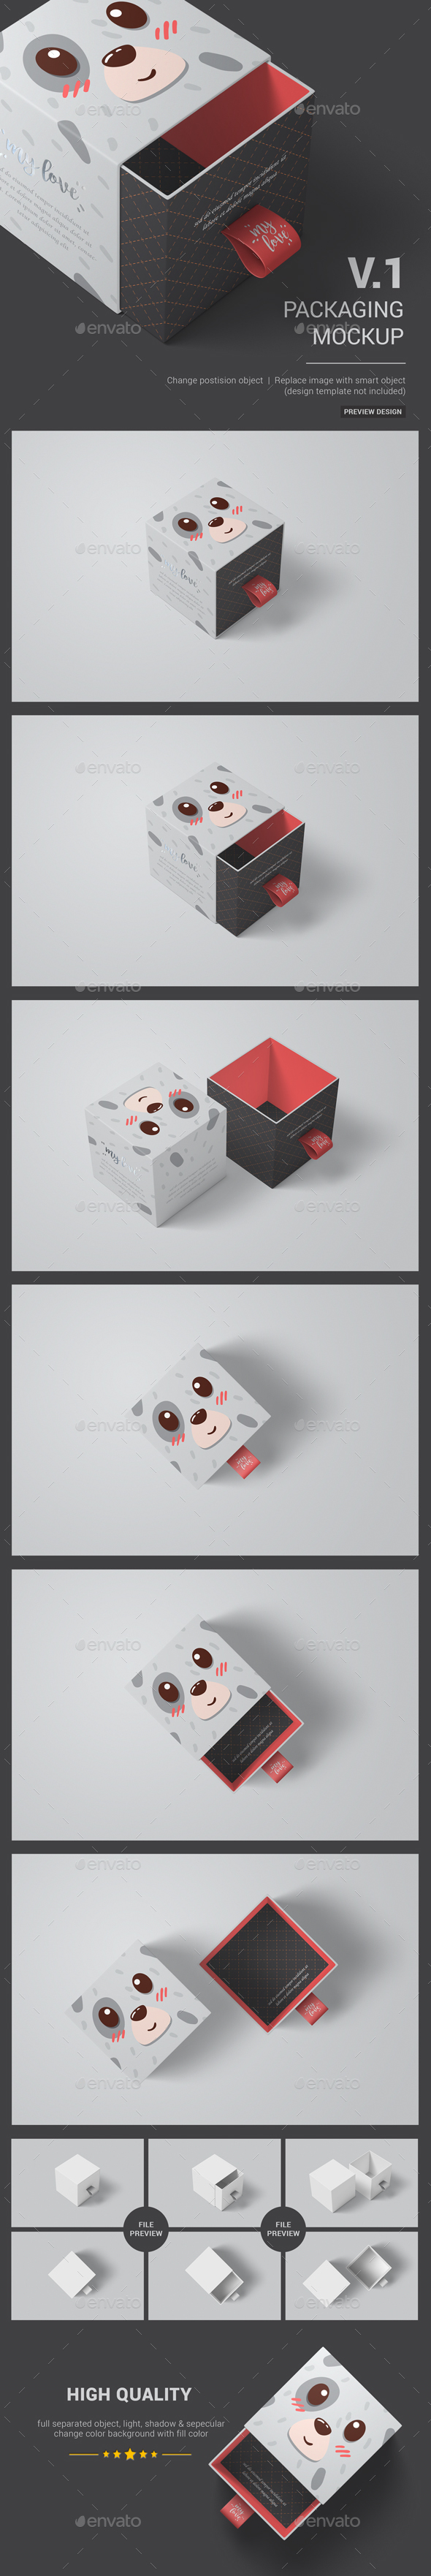 Sliding Box Packaging / Package Mockup 01